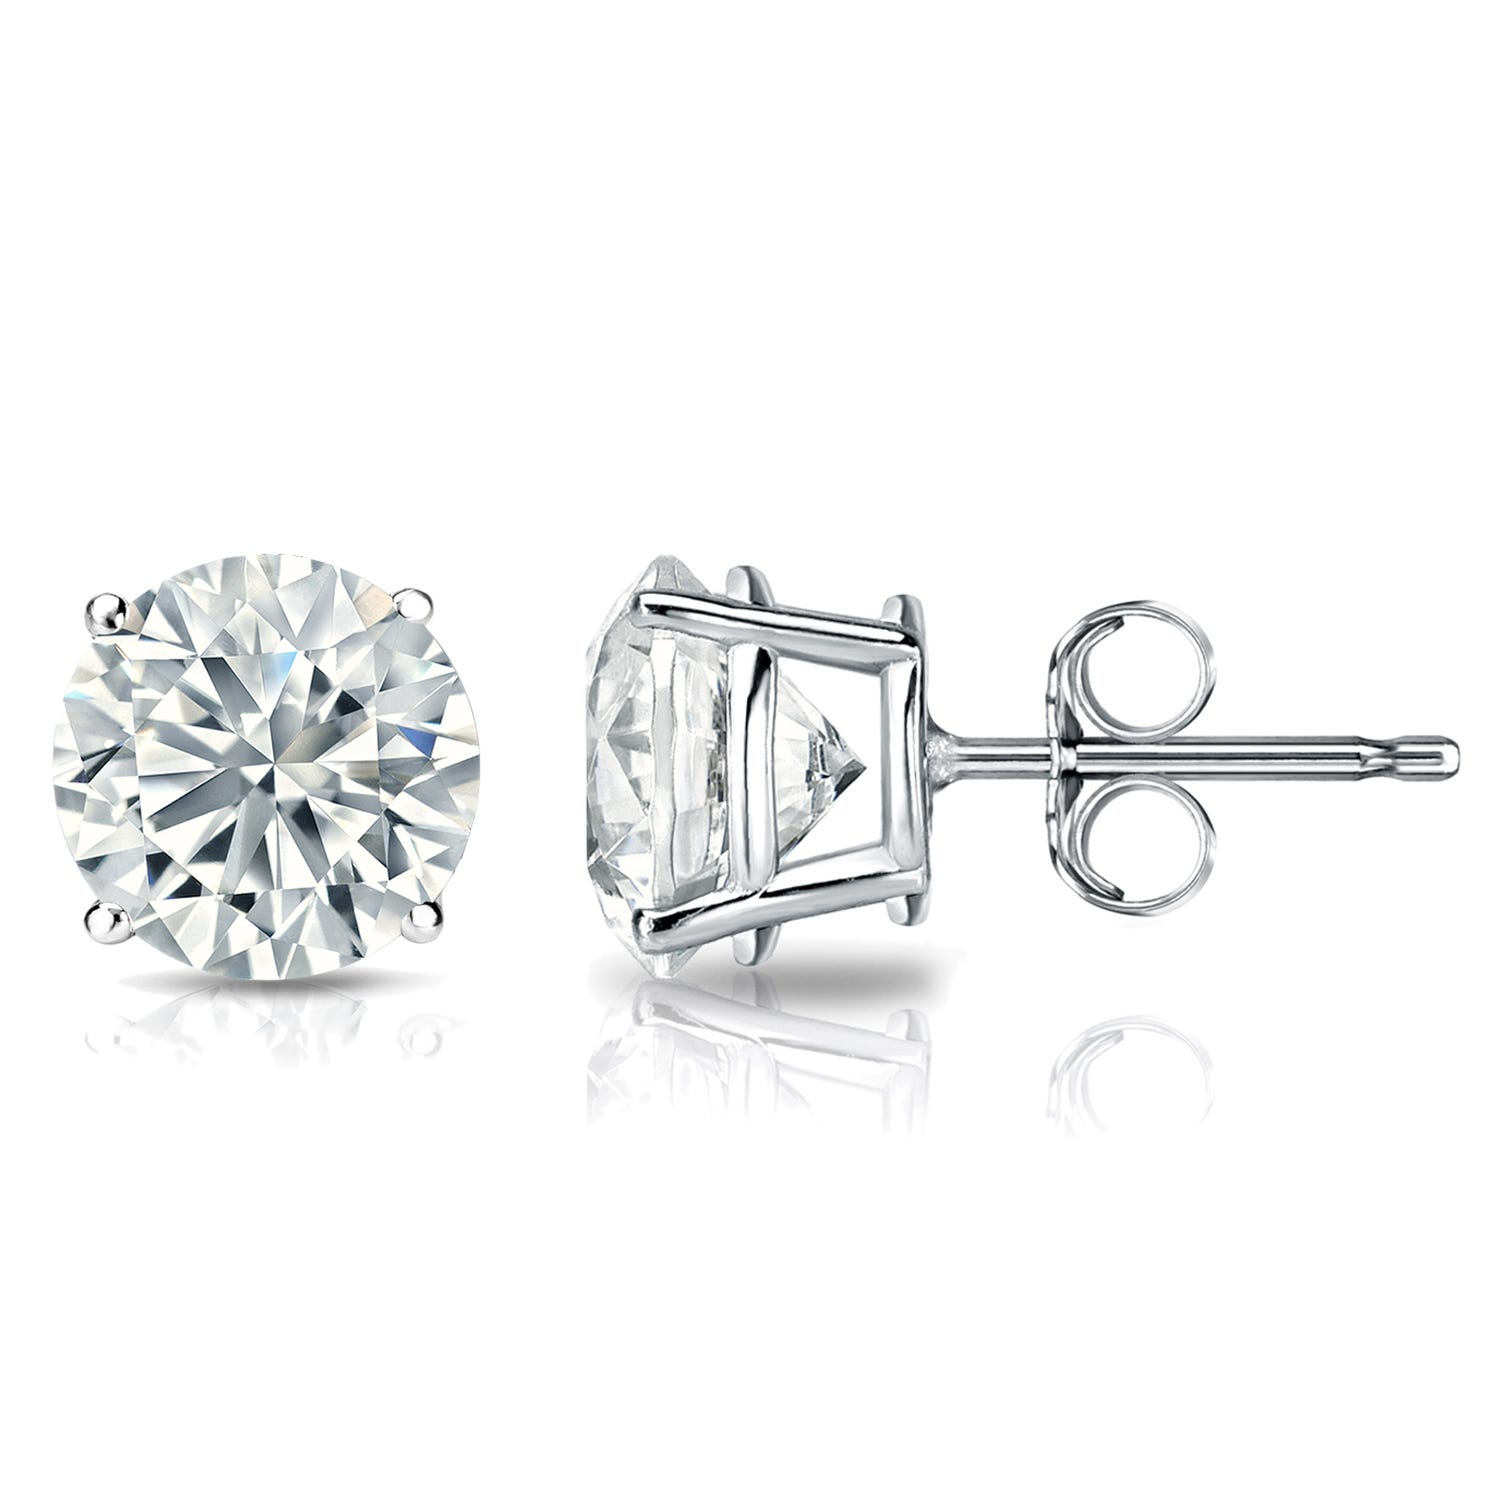 Diamond 2ctw. Round Solitaire Stud Earrings (I-J, I2) Platinum